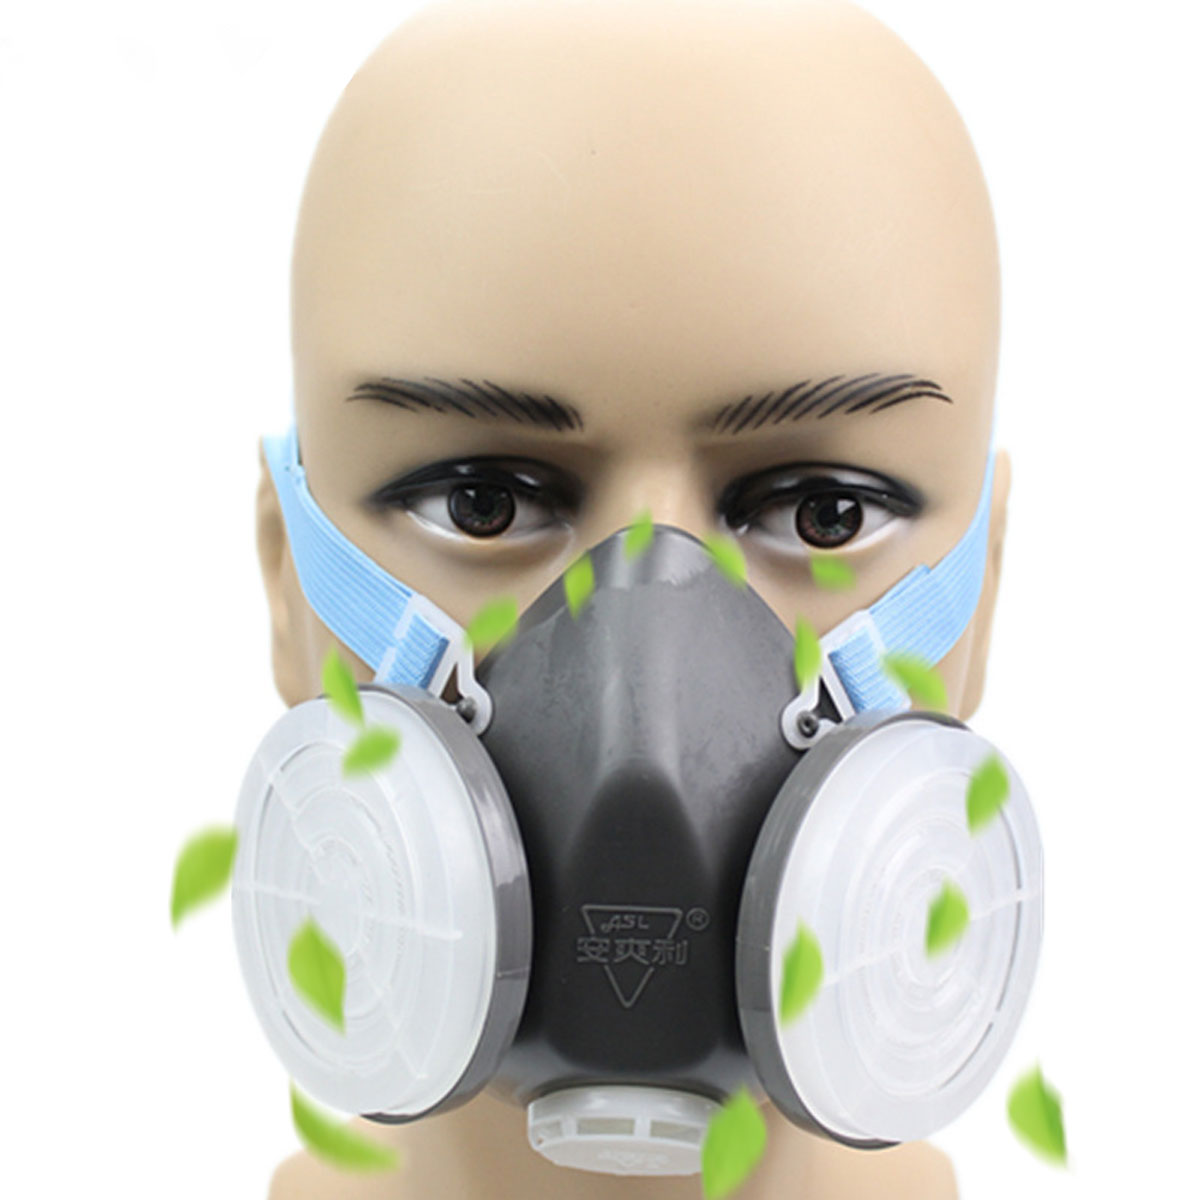 Safurance Dual Anti-Dust Gas Respirator Mask PN2.5 Dust-proof Twin Chemical Spray Paint Workplace Safety Headwear MaskSafurance Dual Anti-Dust Gas Respirator Mask PN2.5 Dust-proof Twin Chemical Spray Paint Workplace Safety Headwear Mask